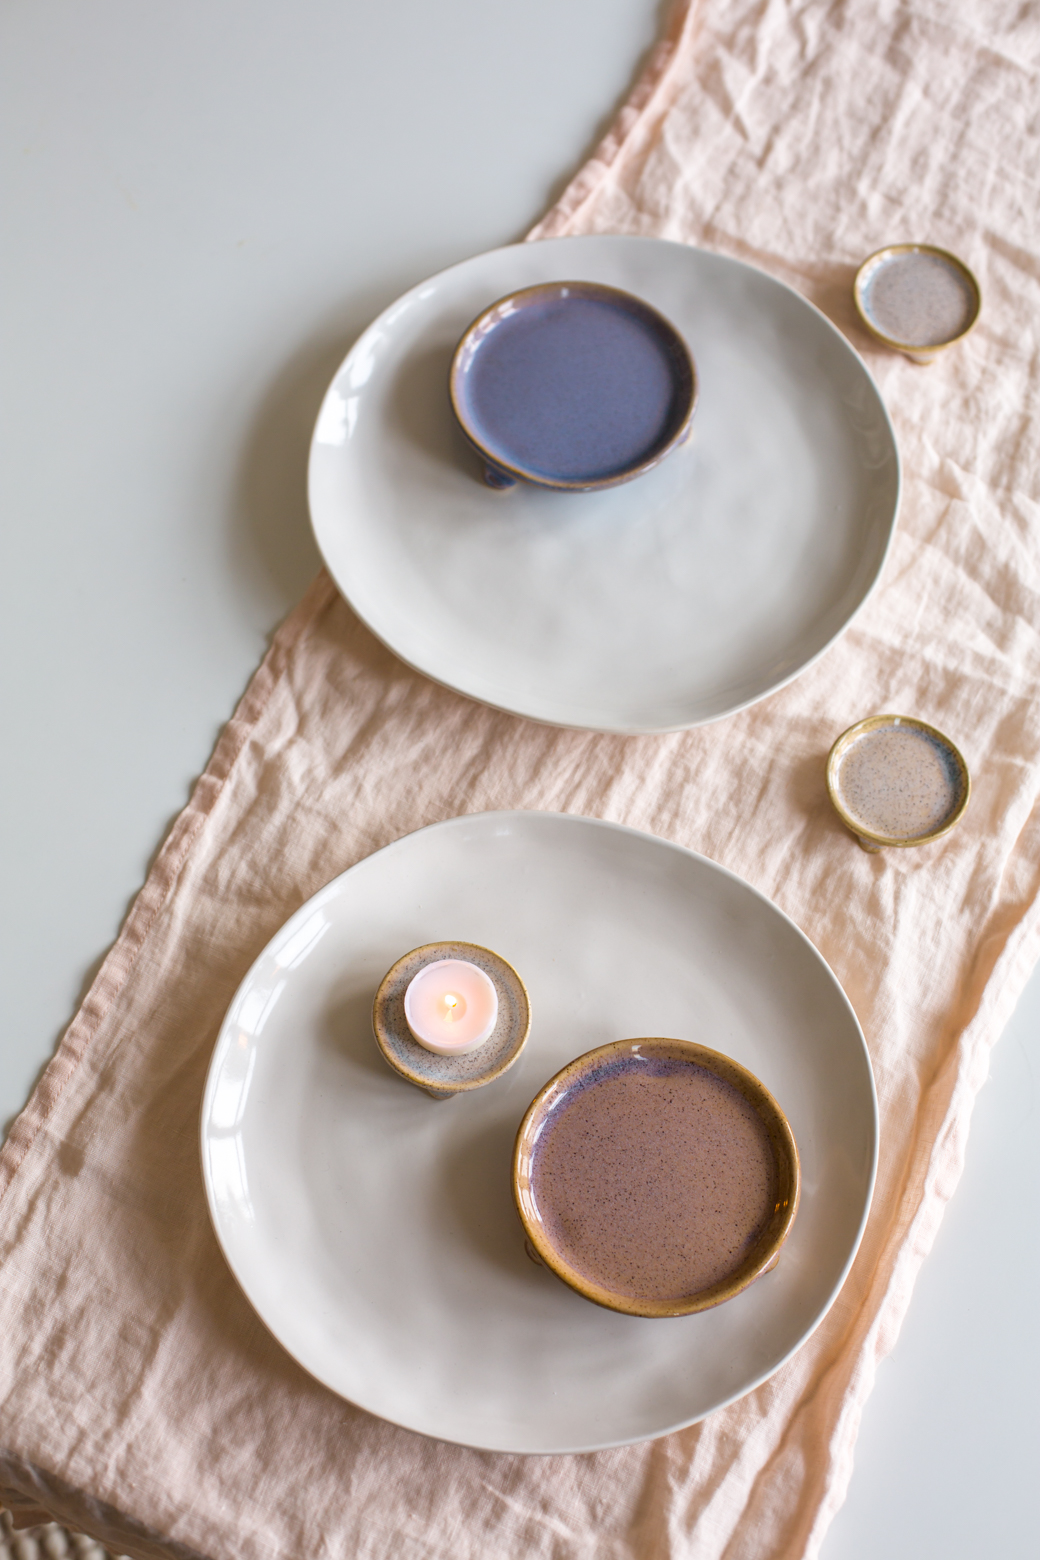 The little pottery pieces are perfect for tapas a dips or for tealights and pillar candles.